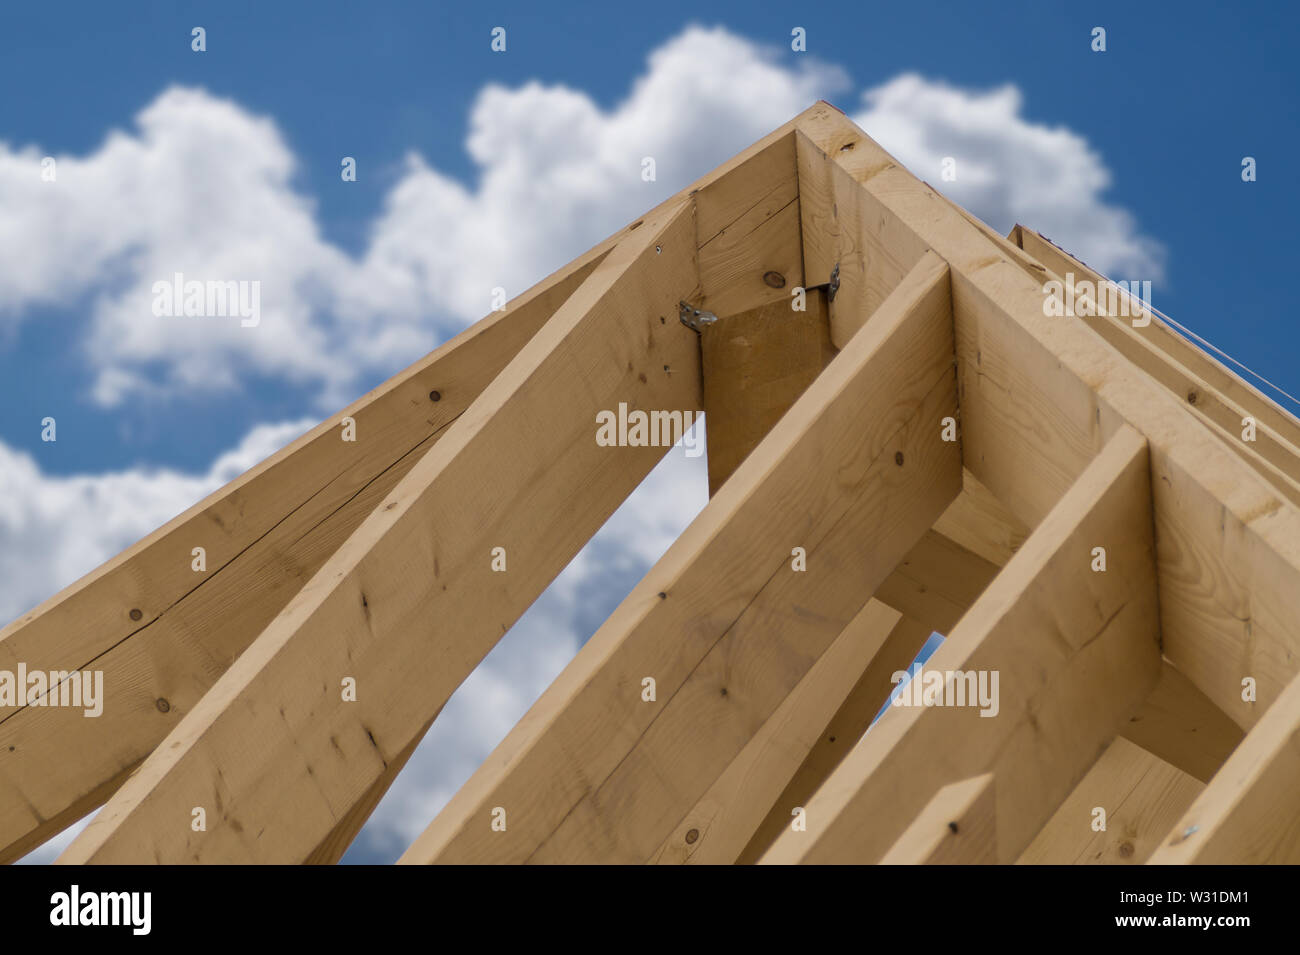 Wooden roof construction of a new residential house. Close up against blue cloudy sky. Construction site. - Stock Image